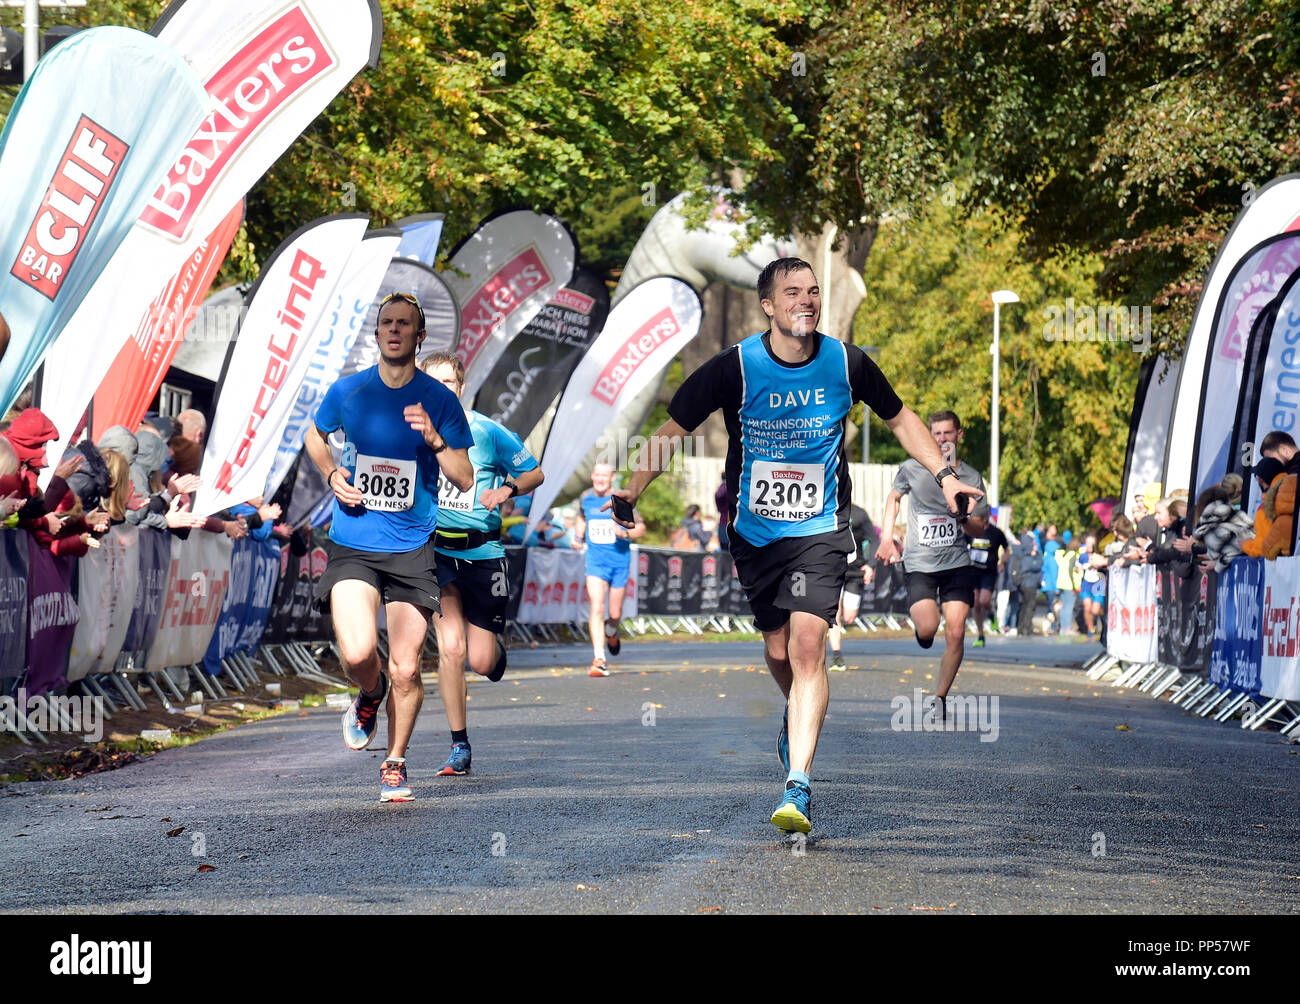 Scotland, UK. 23rd Sept 2018. © Sandy young Photography 07970 268944 2018 Baxters Loch Ness Marathon PICTURED runners at the finish line in Inverness.     E: sandy@scottishphotographer.com W: www.scottishphotographer.com  **Editorial use only**no photo sales**no marketing** credit must read scottishphotographer.com** Credit: sandy young/Alamy Live News - Stock Image